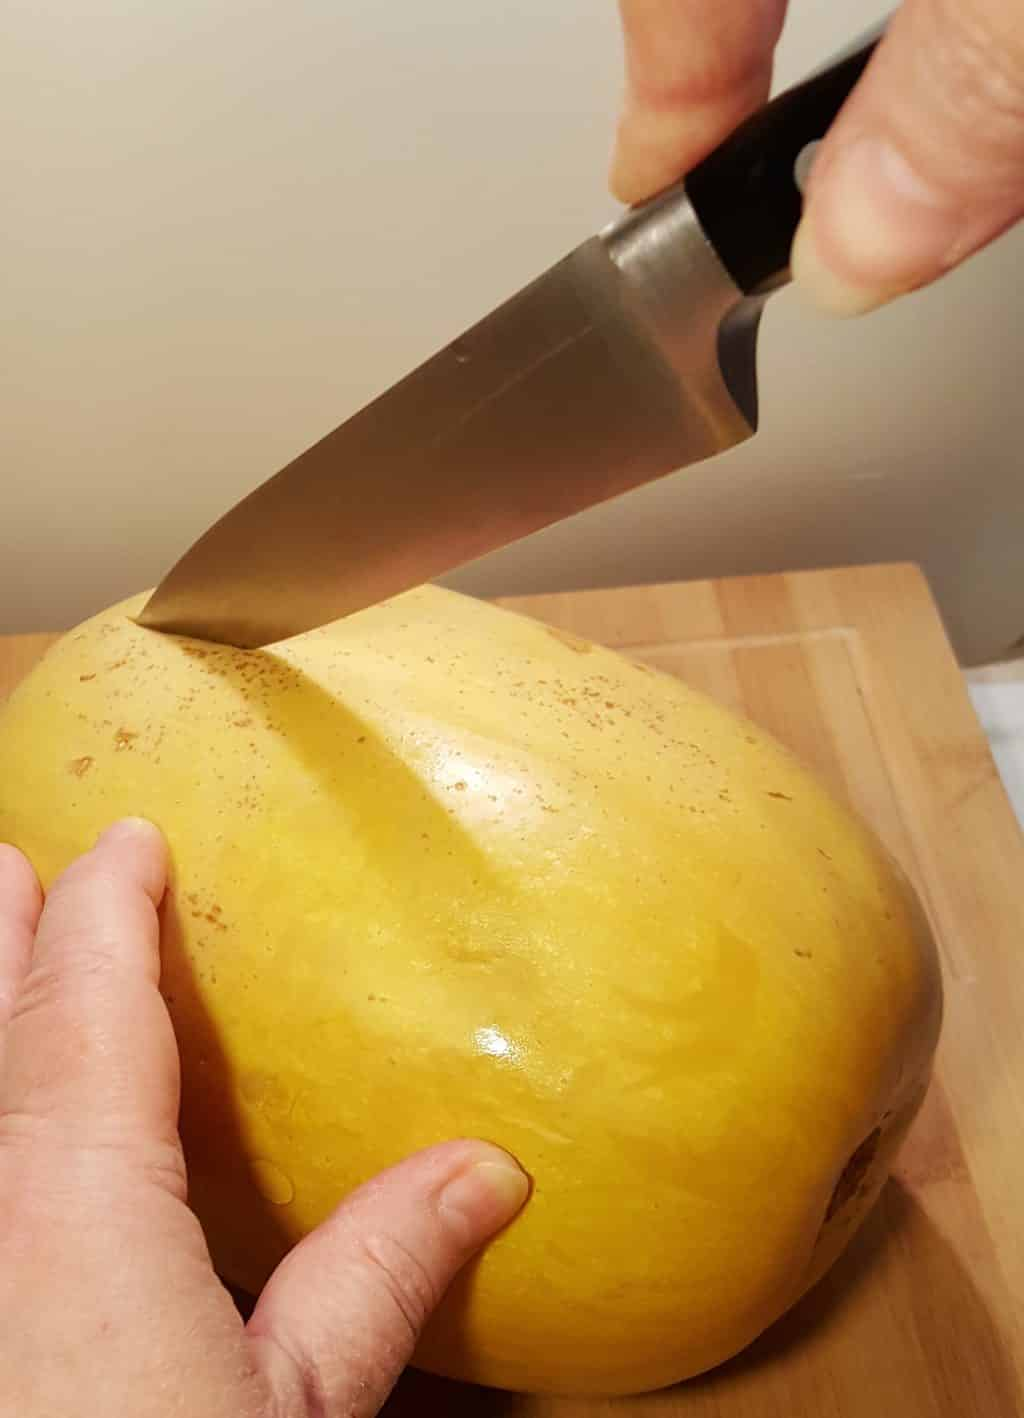 Use a Sharp Knife to Cut the Spaghetti Squash